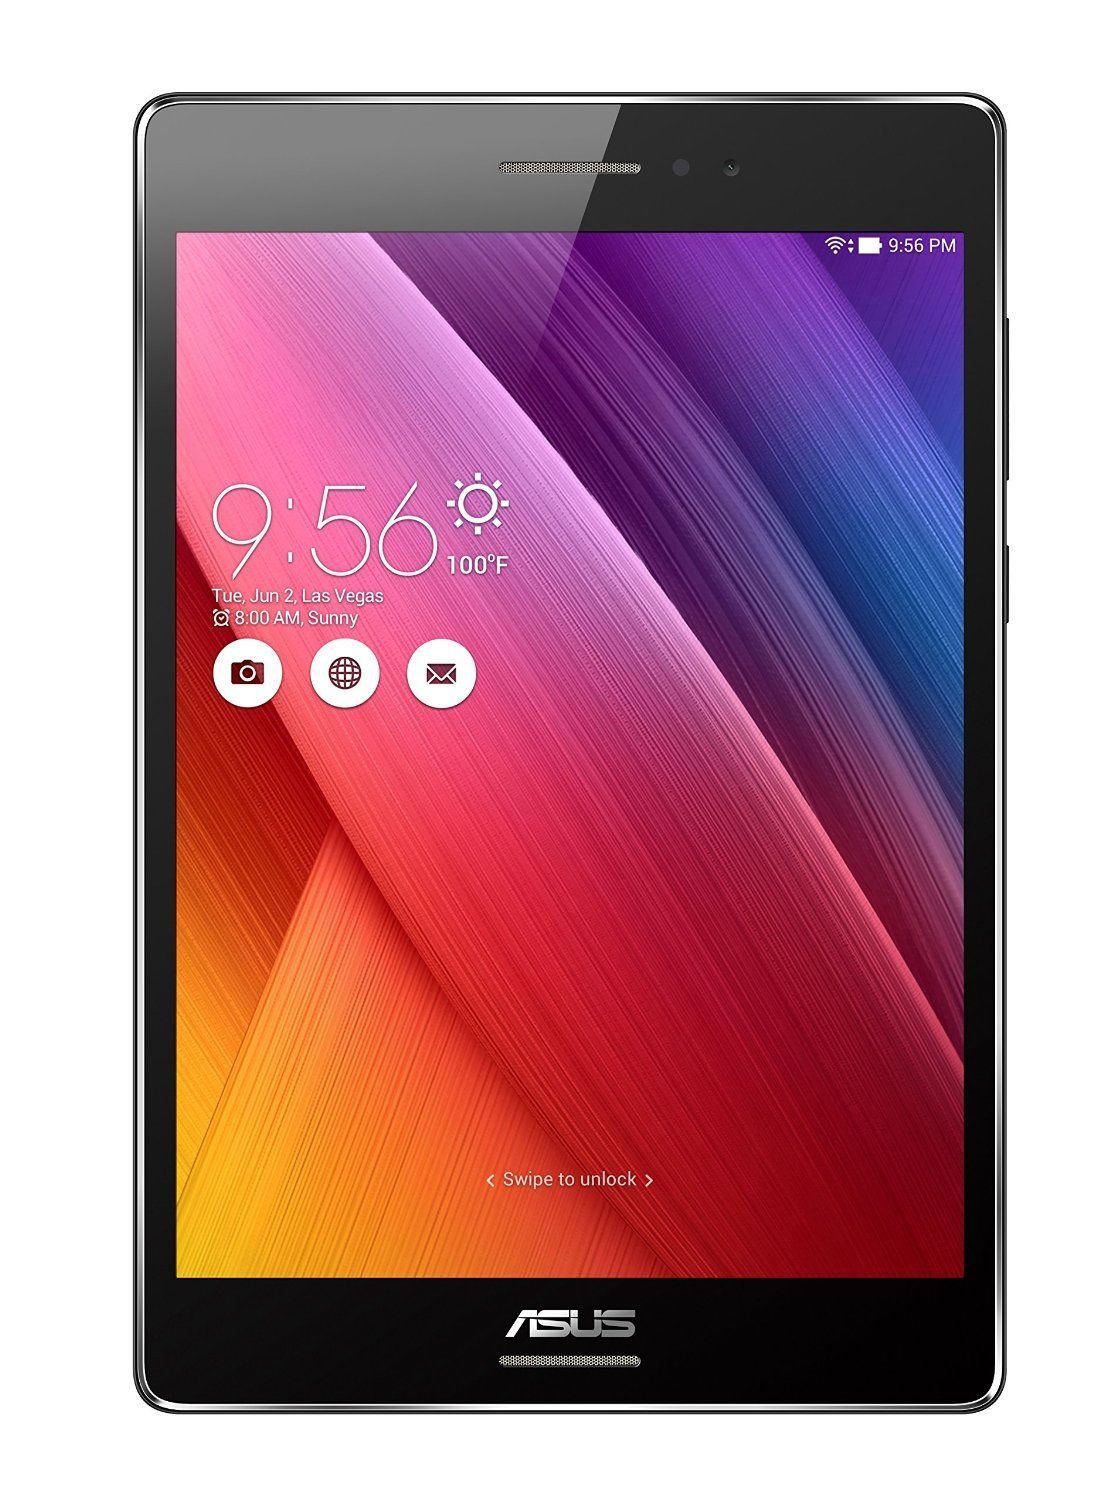 Deal Asus Zenpad S 8 64gb 249 00 03 10 16 Tablet Asus Android Tablets